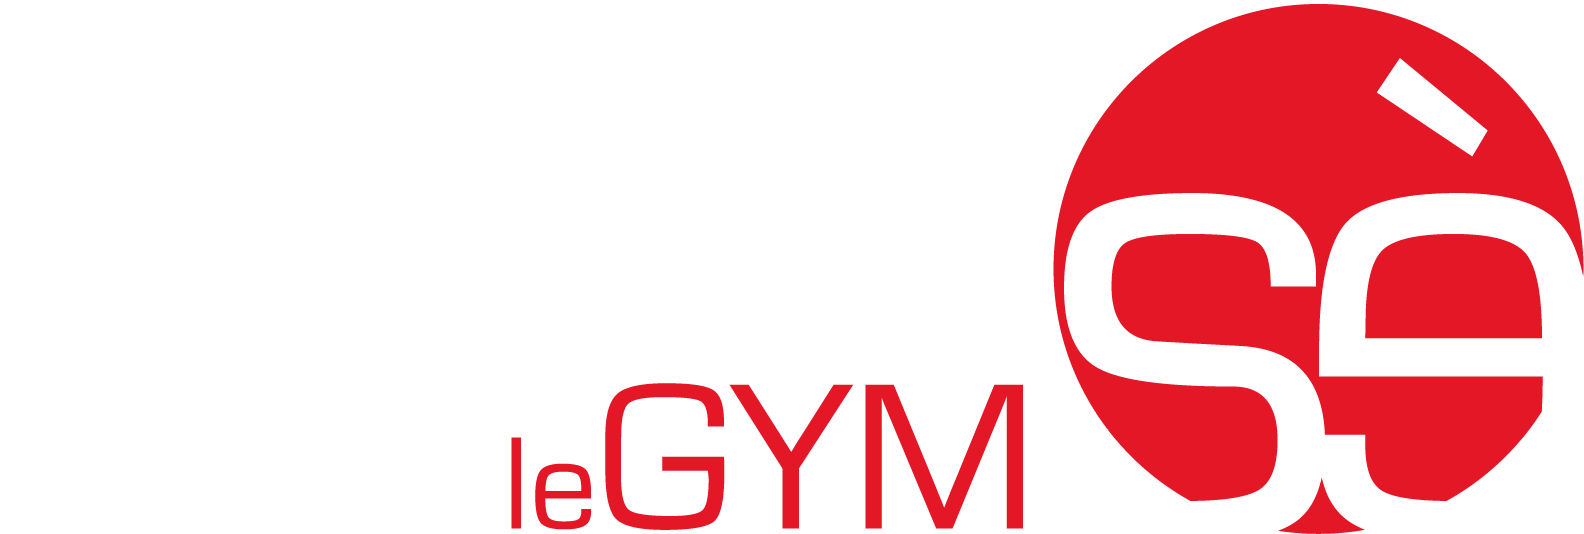 Sport Evolution le Gym